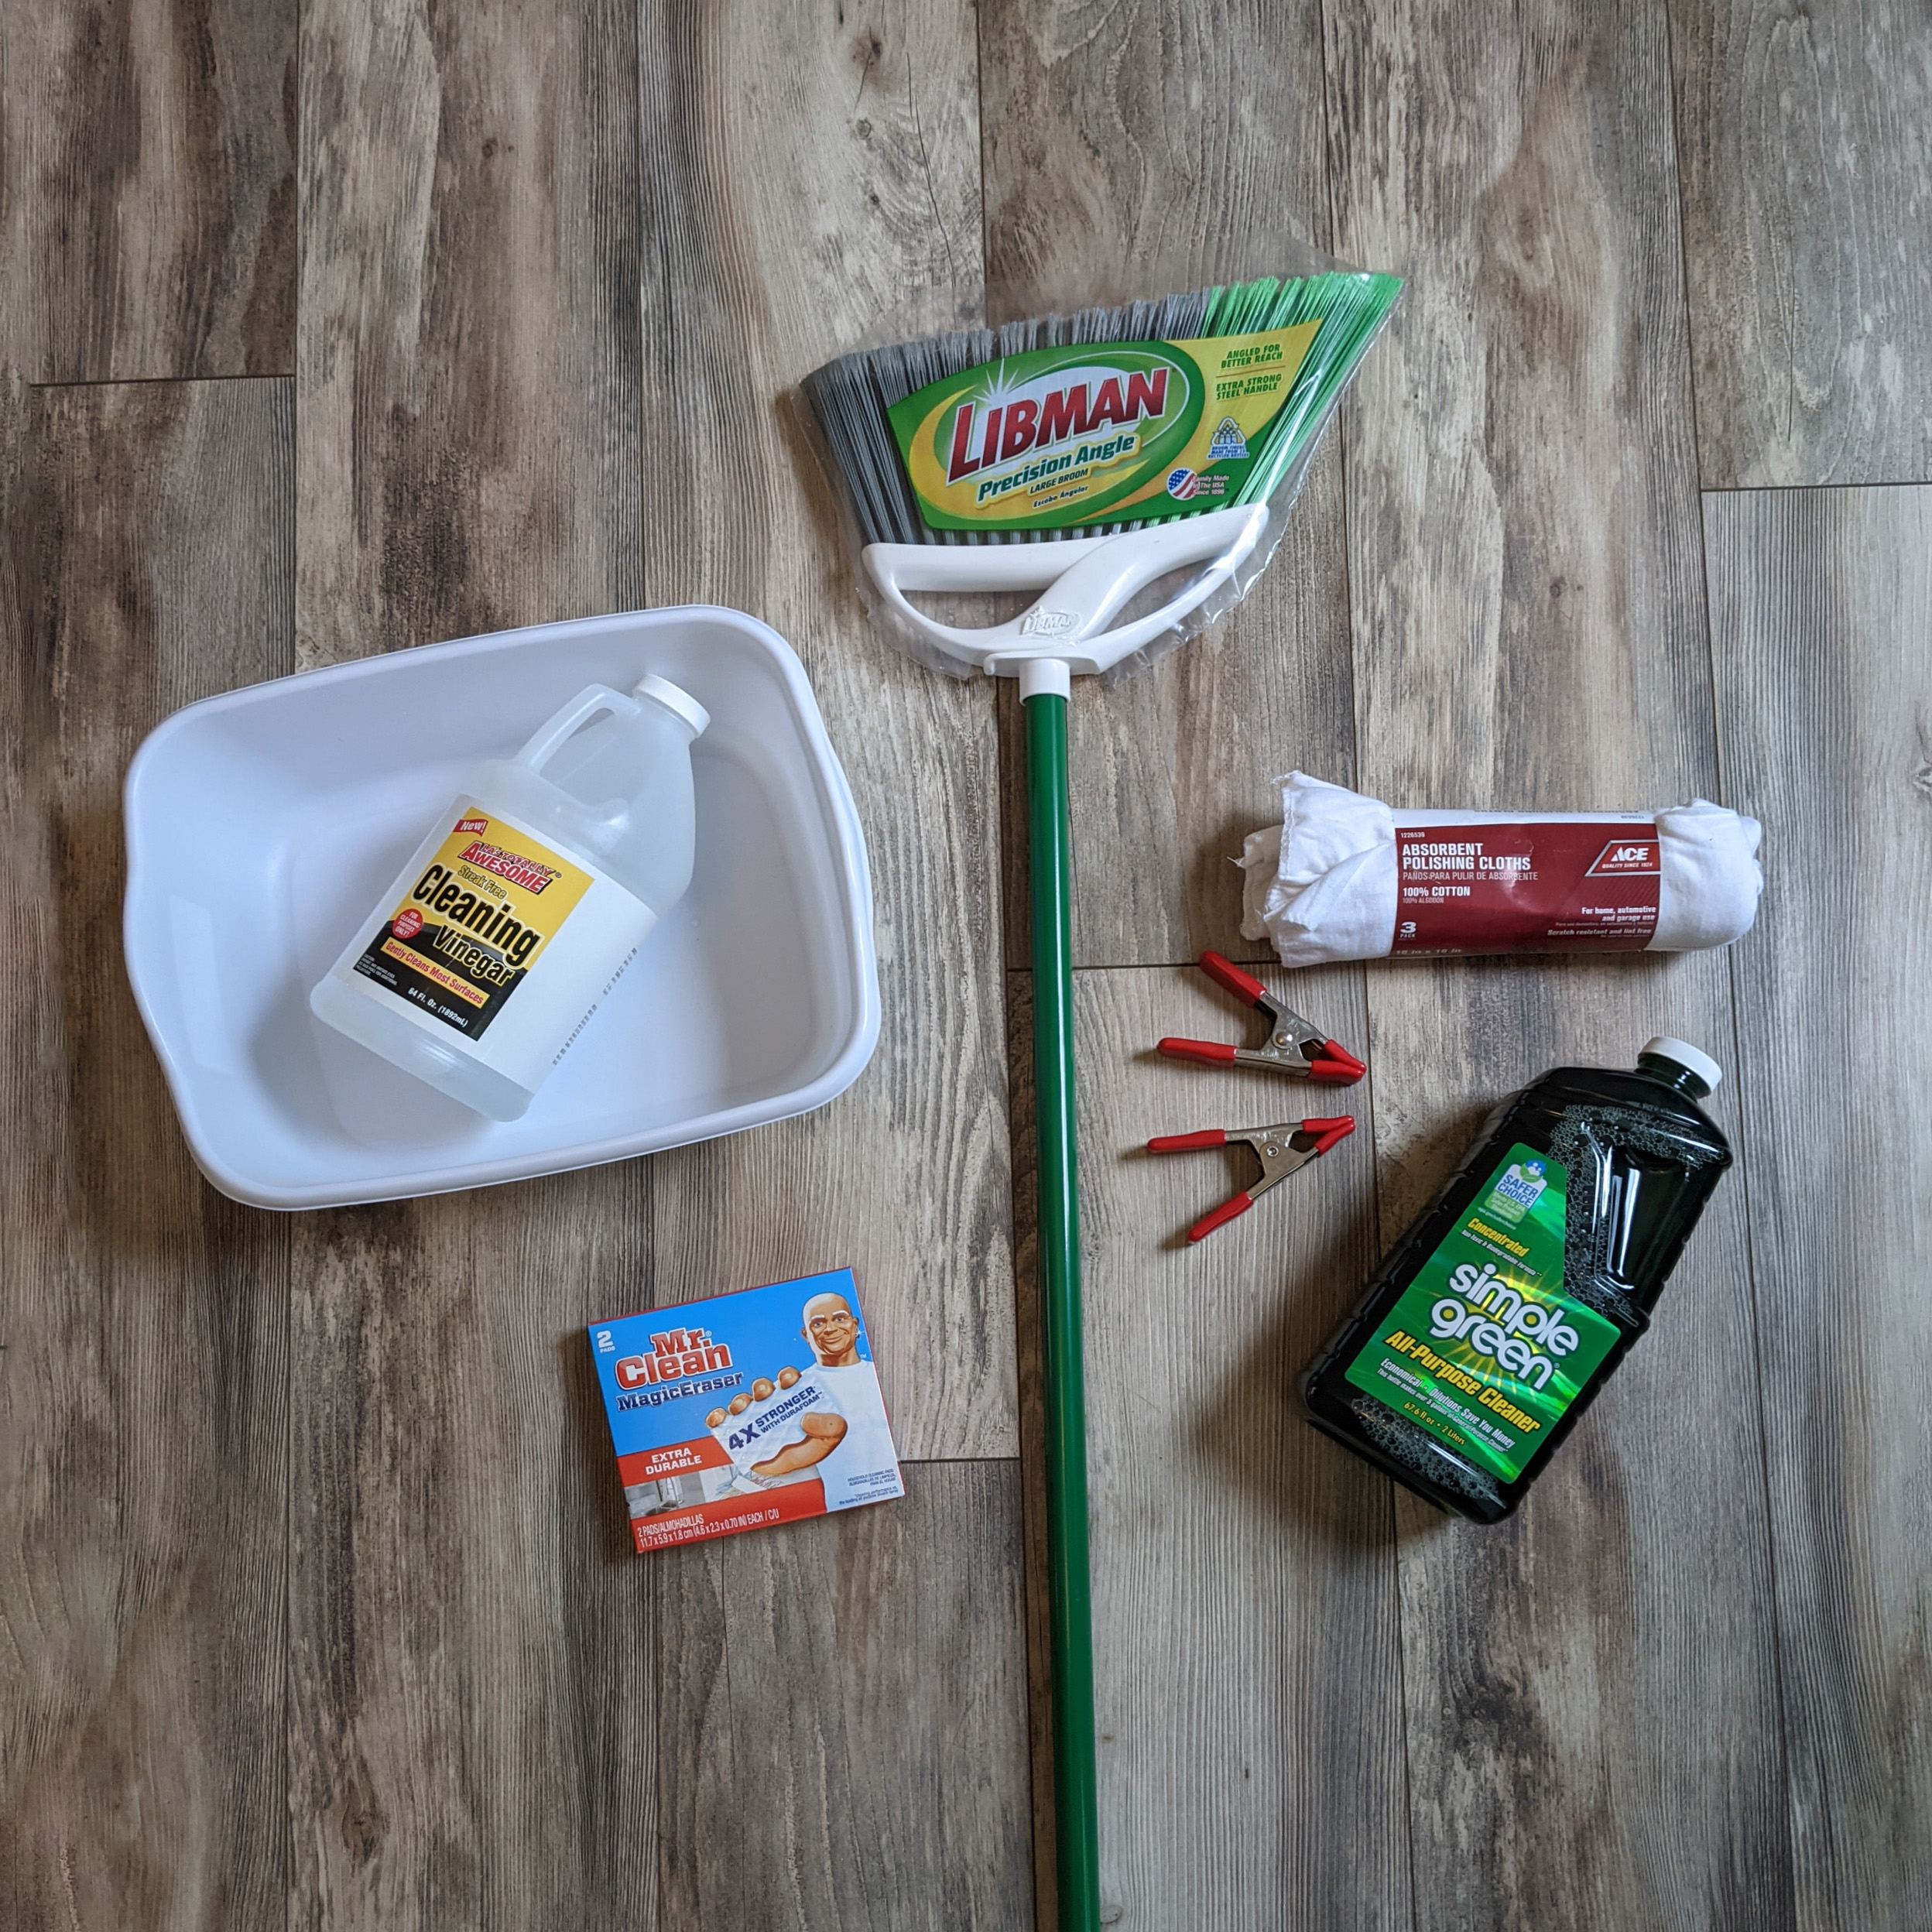 Tools for washing walls: dishpan, broom, towels, clamps, and cleanser.